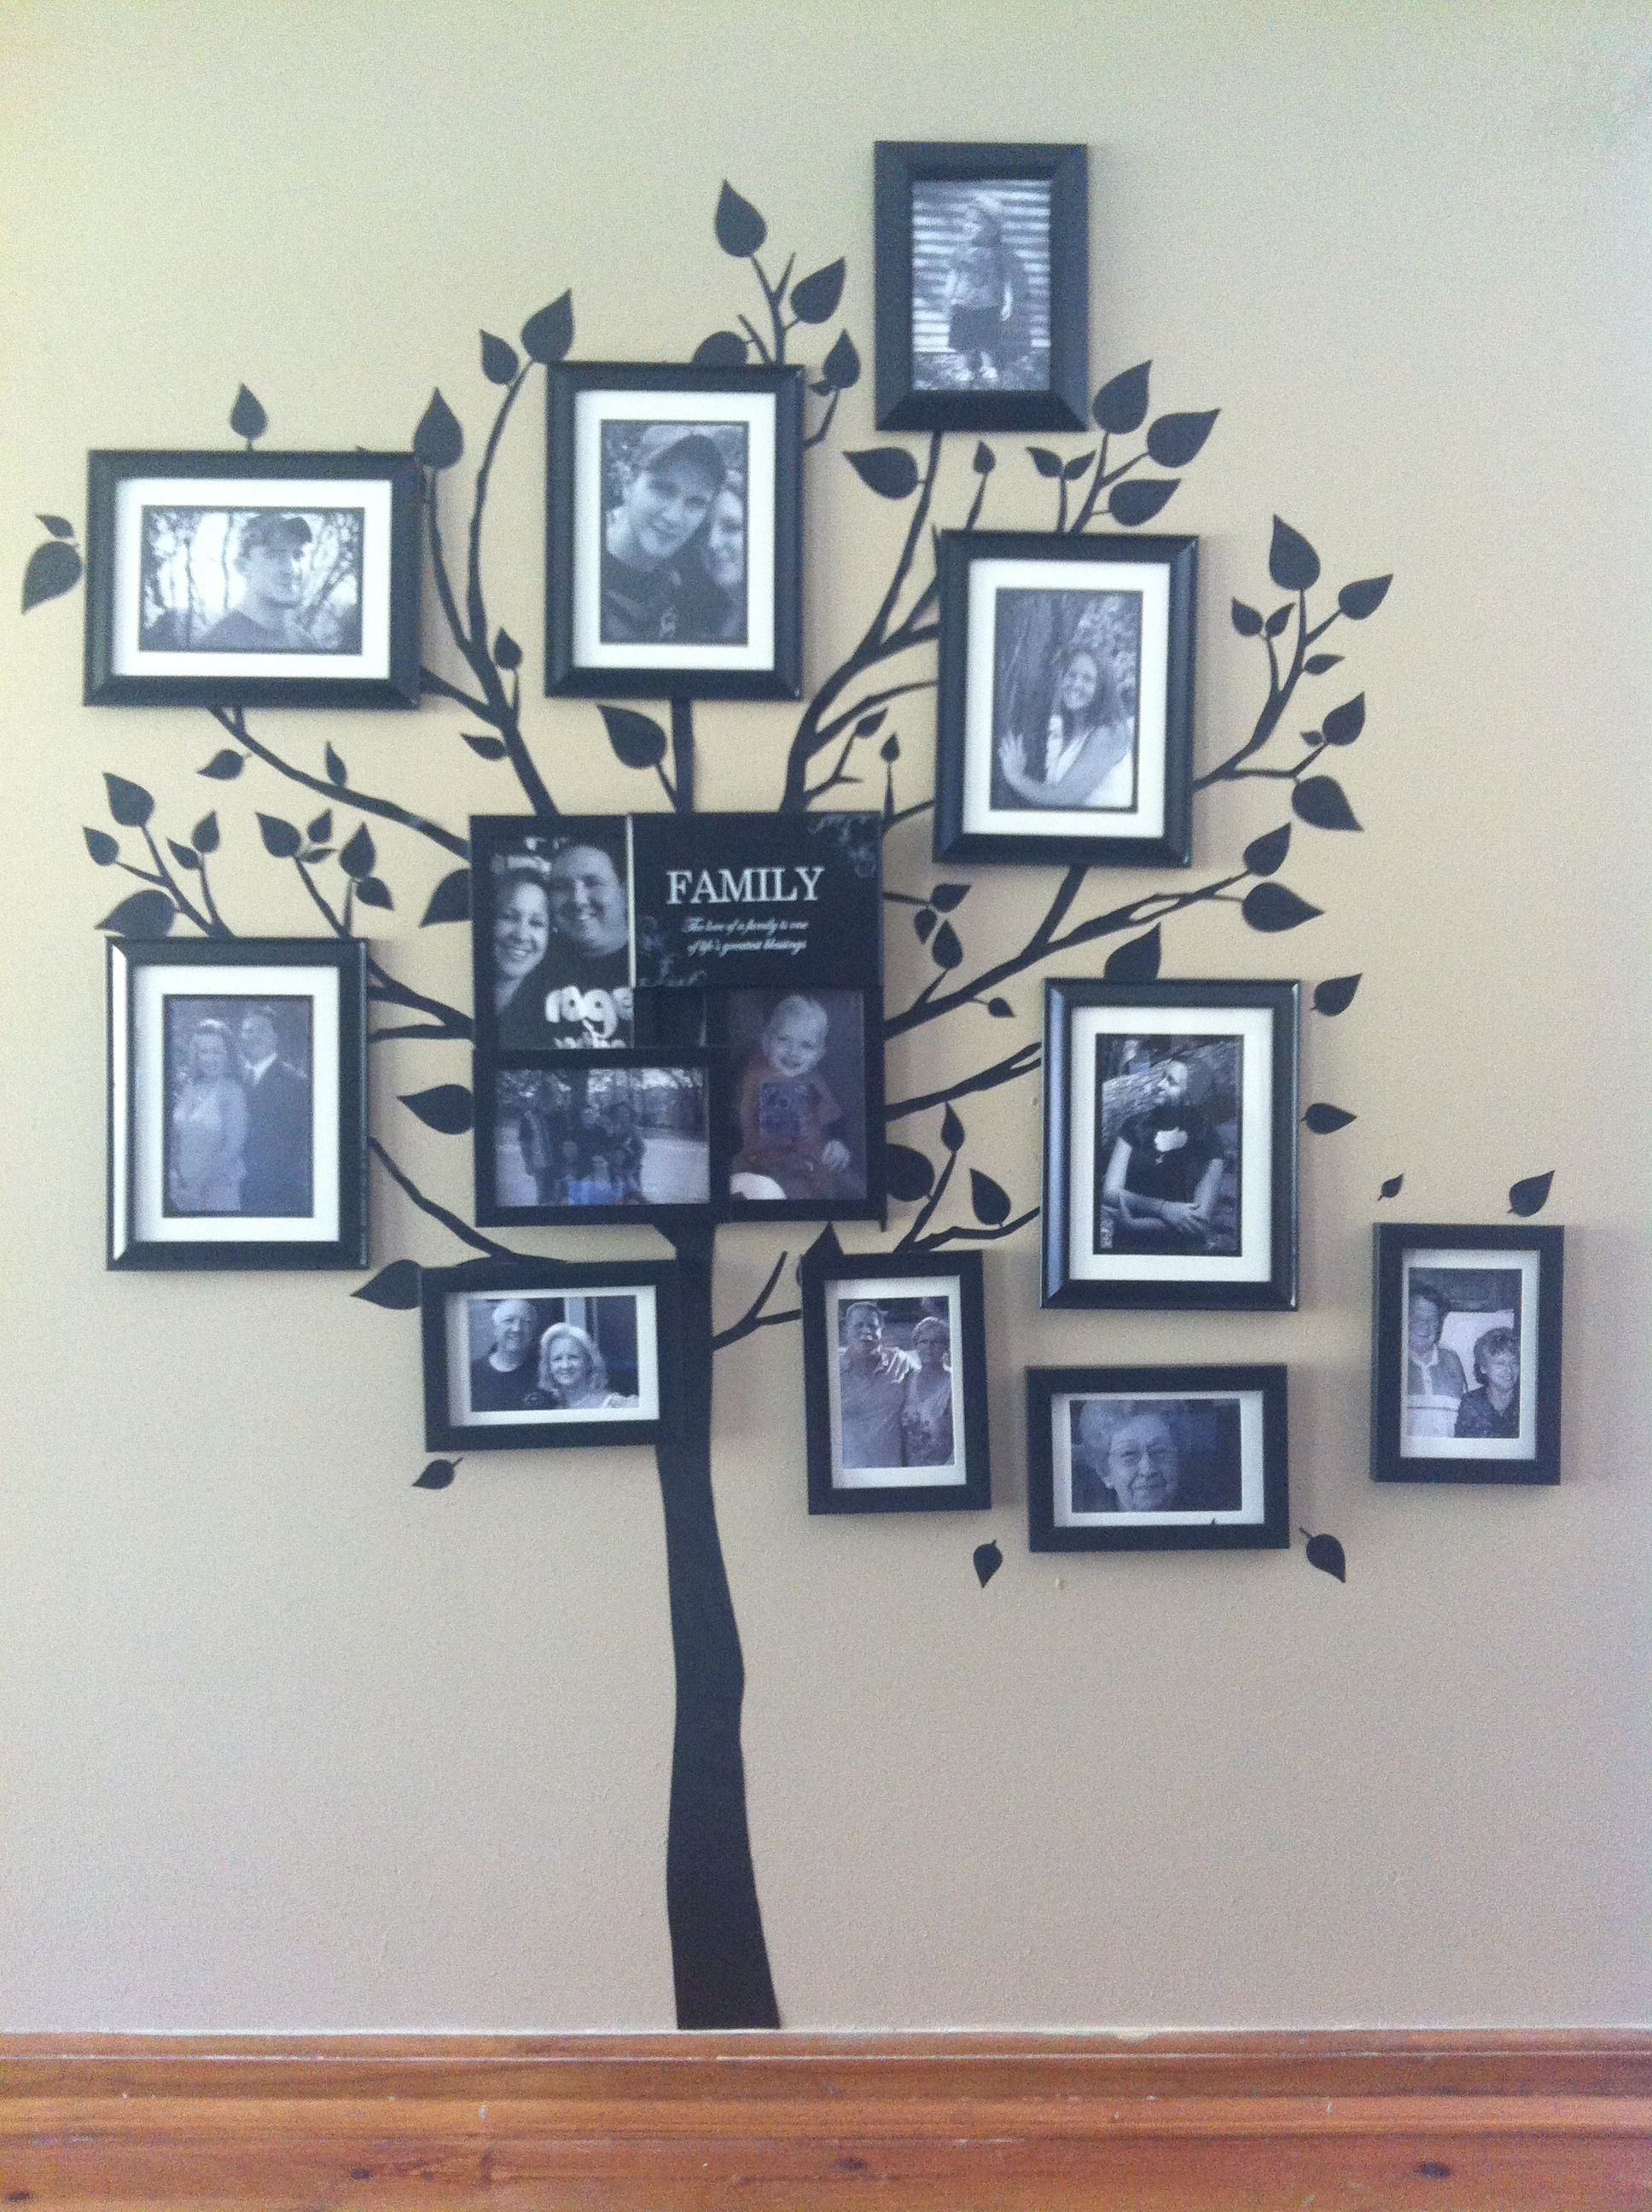 Family Tree Wall All Black And White Photos Tree Decal From Kohls